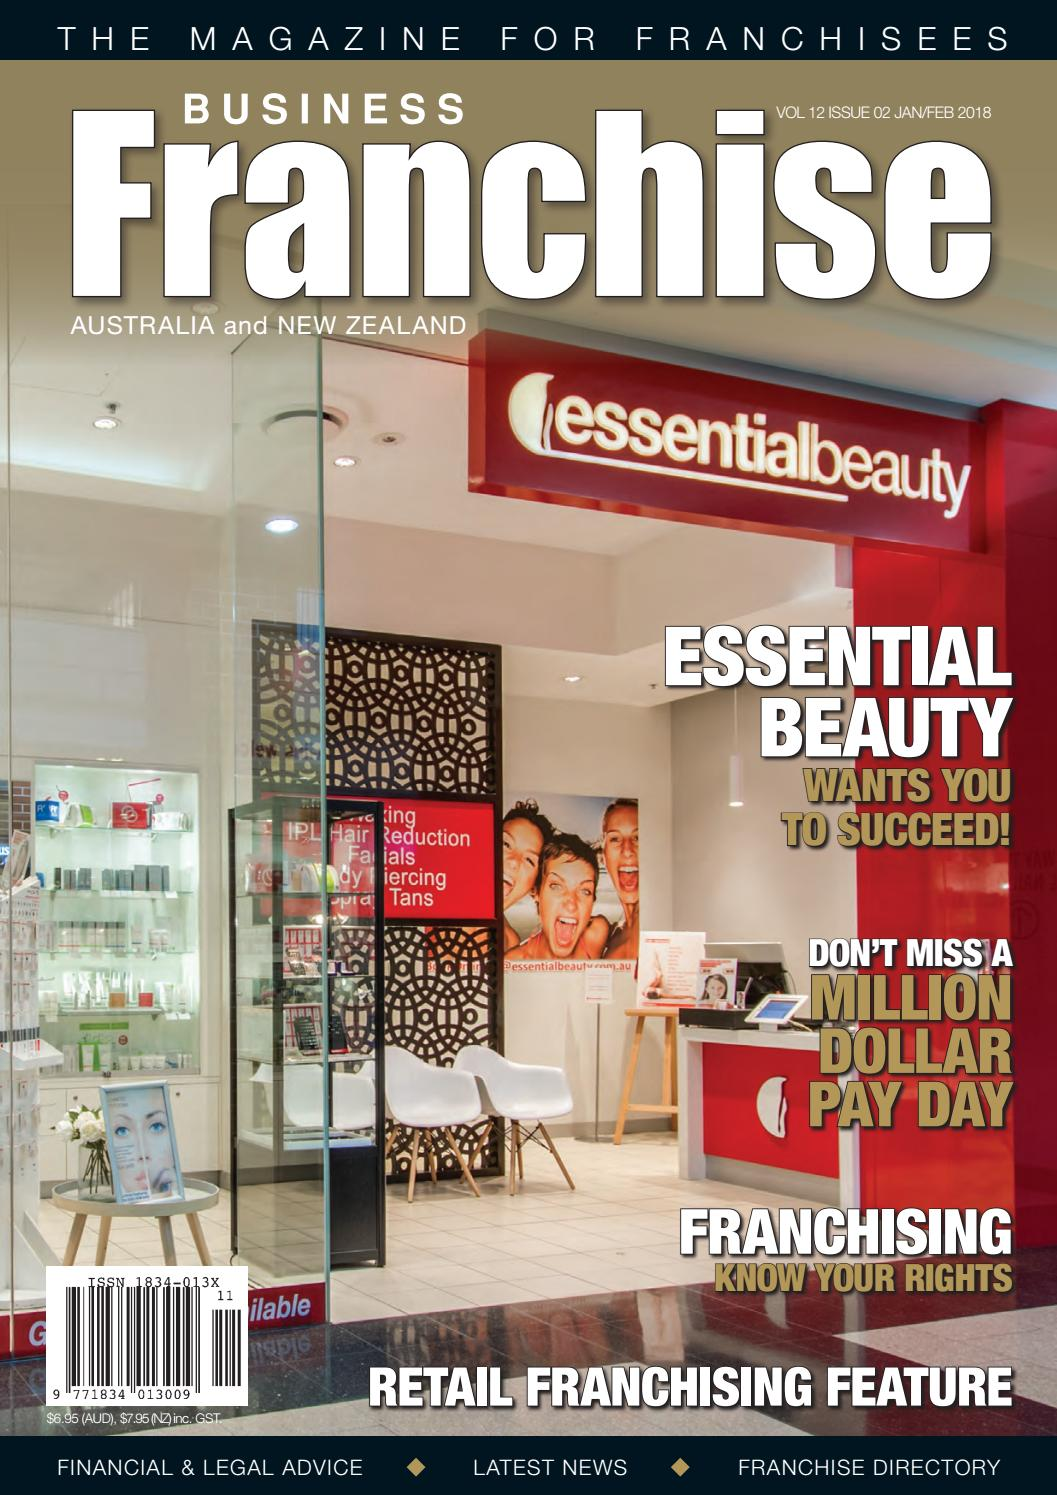 Business franchise aus nz januaryfebruary 2018 by cgb publishing business franchise aus nz januaryfebruary 2018 by cgb publishing issuu fandeluxe Image collections